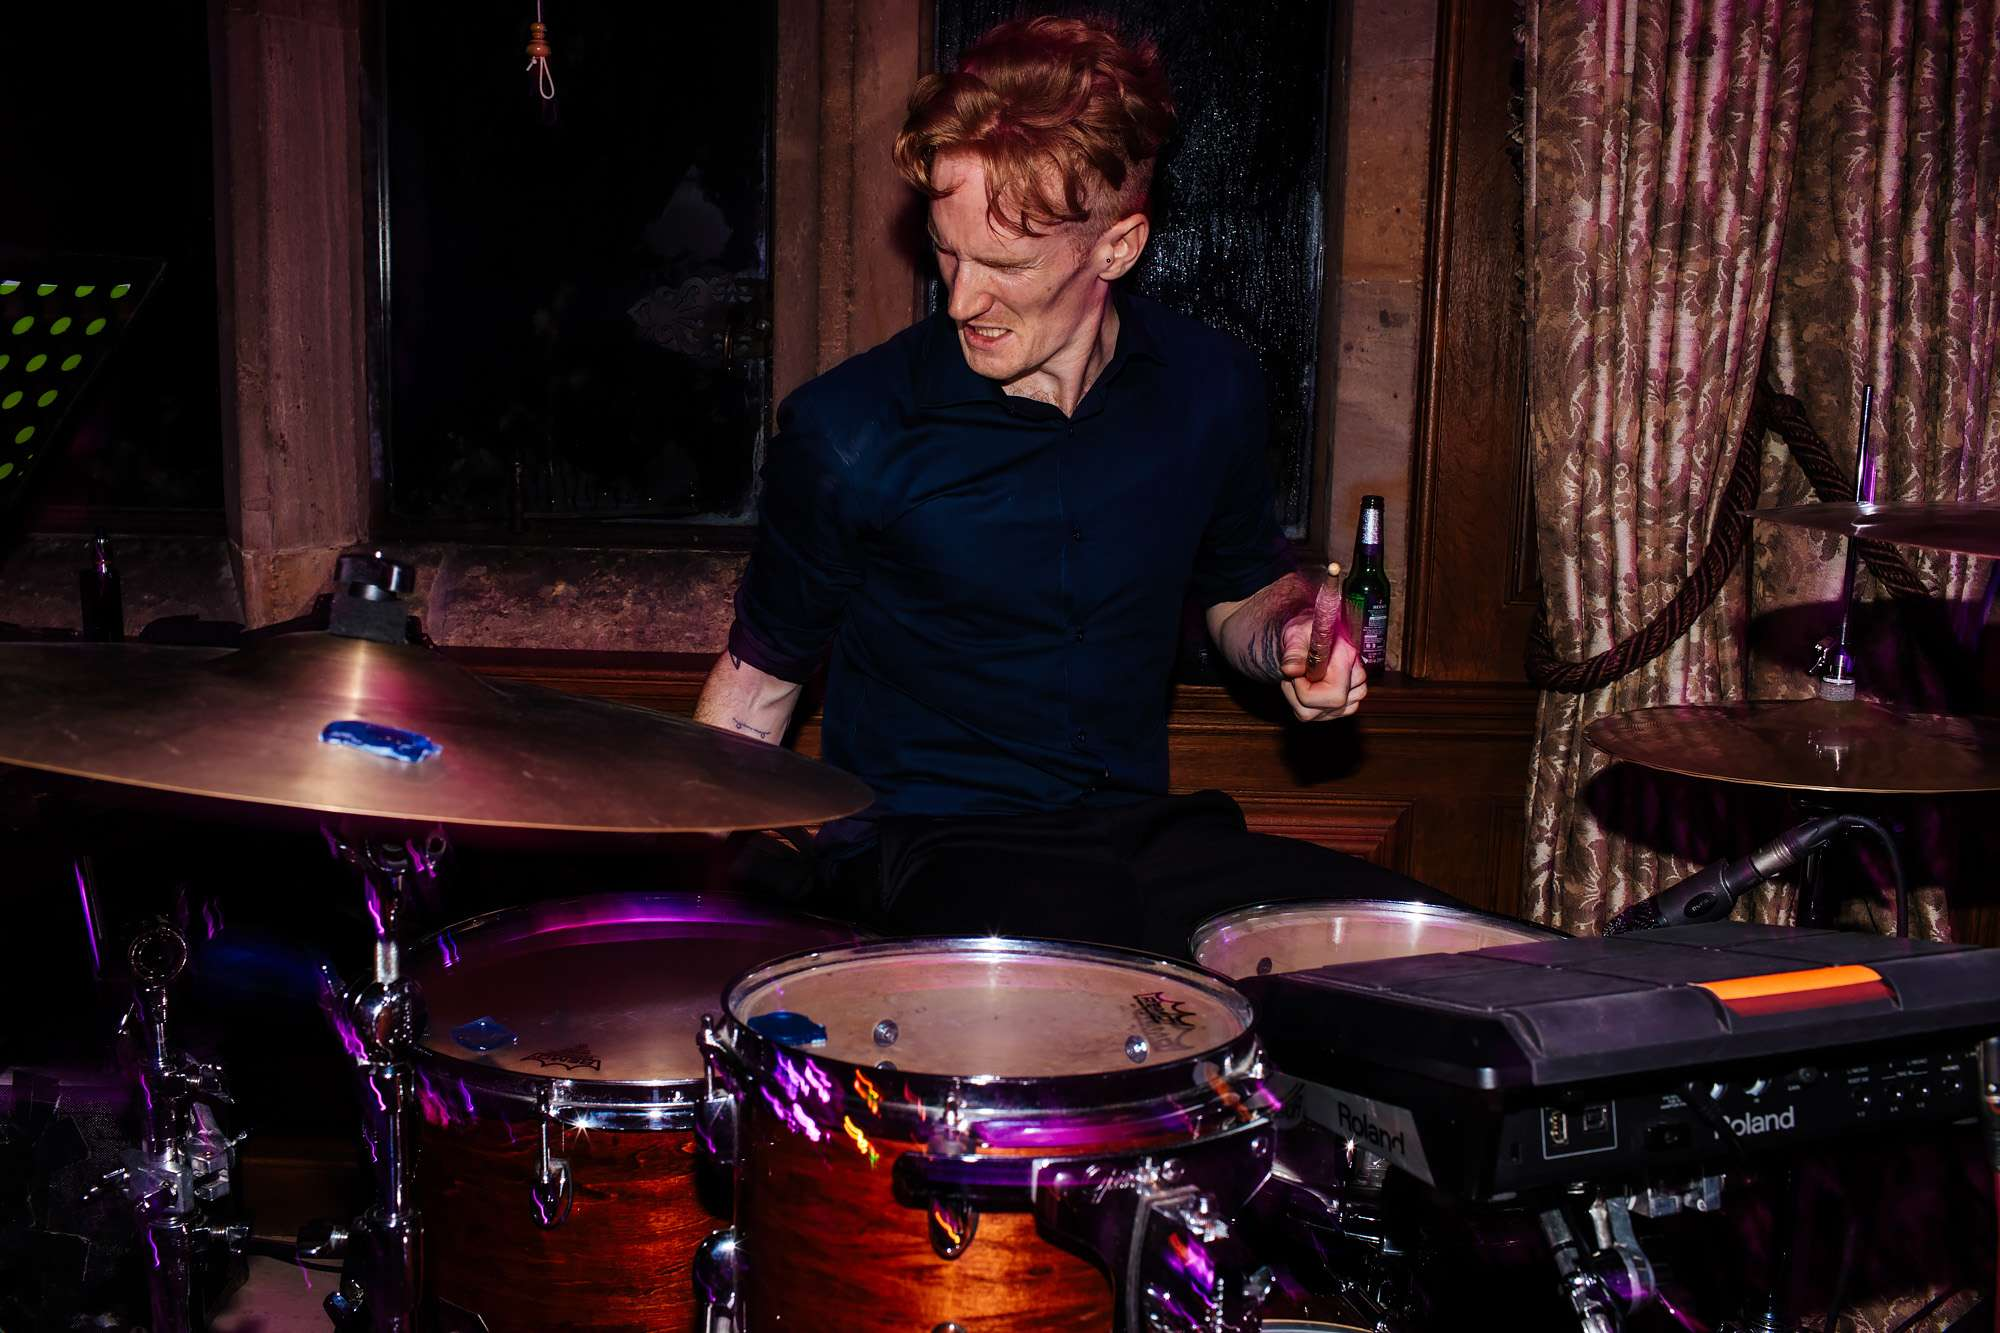 Drummer in the band at a wedding at Cowdray House